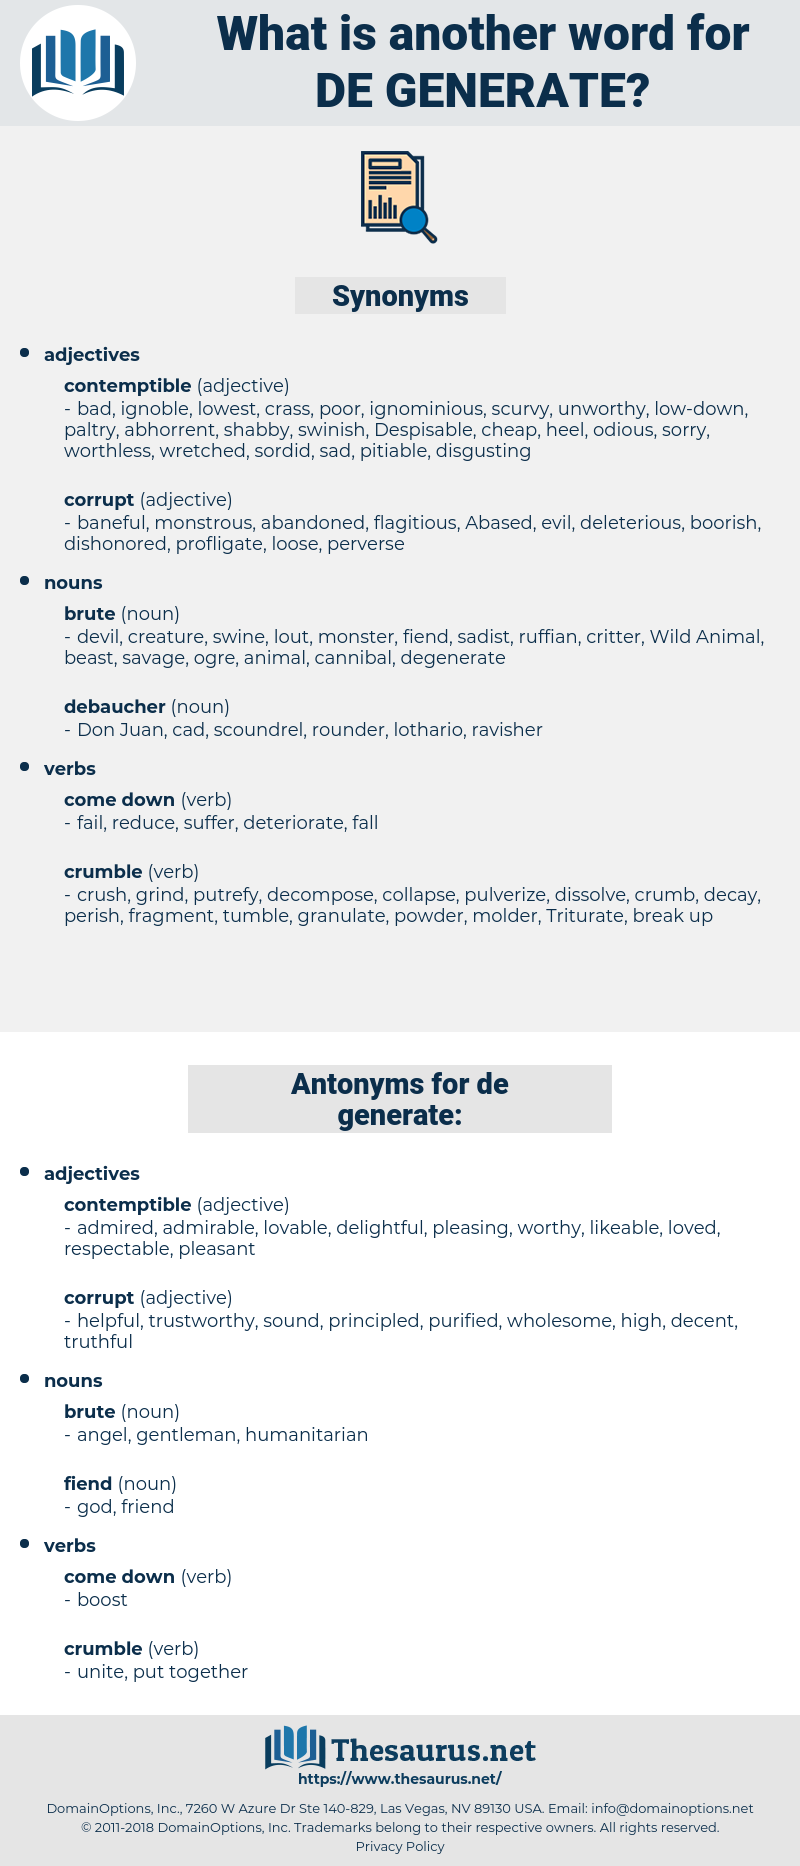 de generate, synonym de generate, another word for de generate, words like de generate, thesaurus de generate